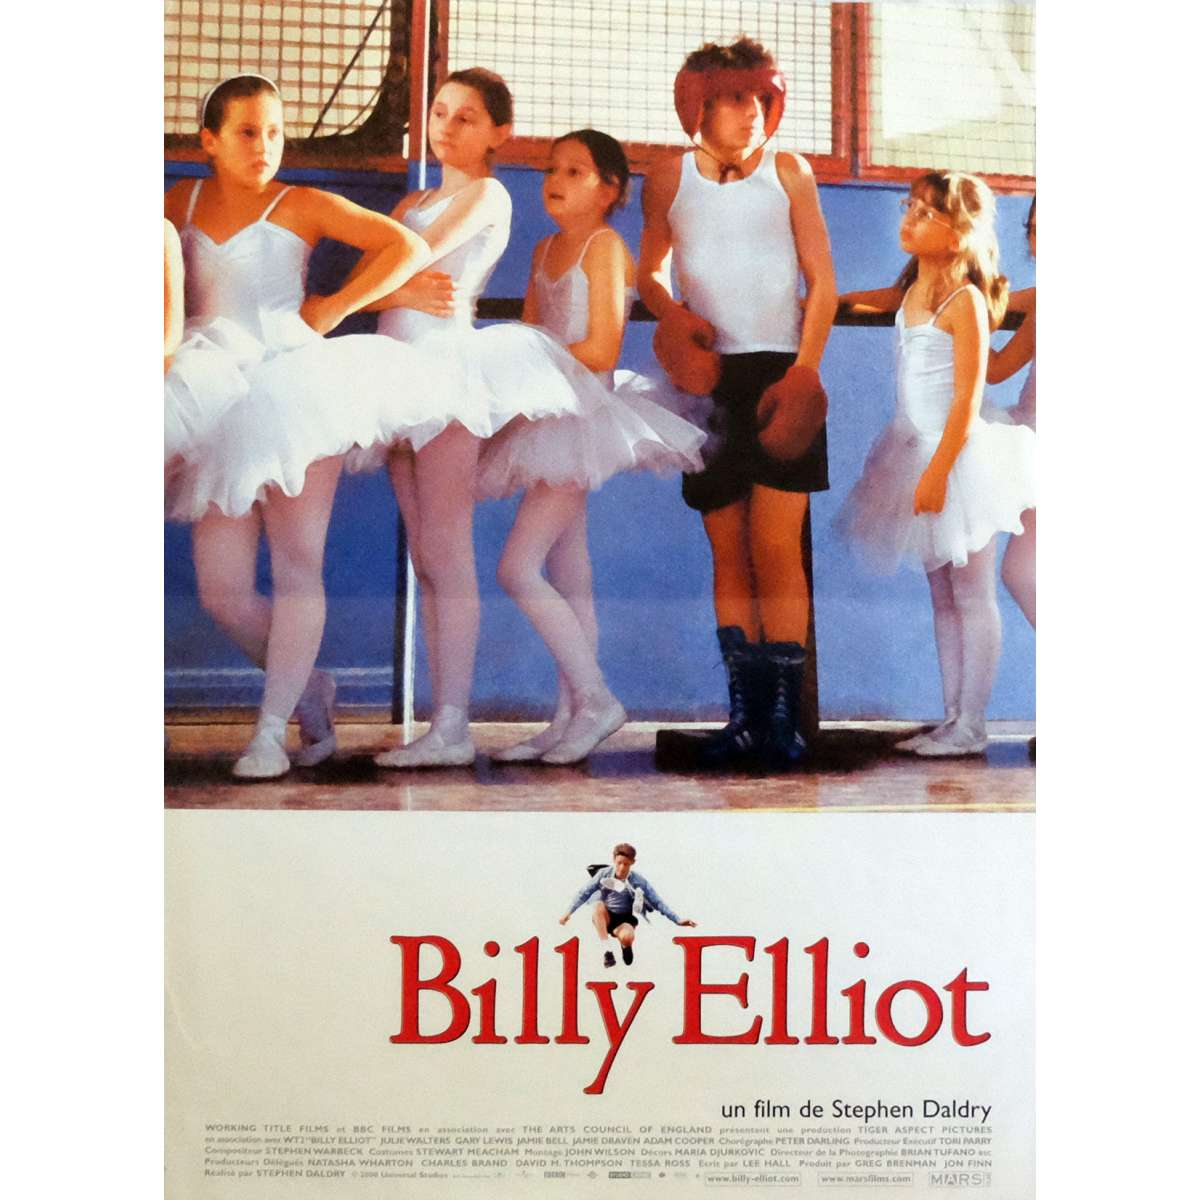 billy elliot stephen daldry essay Analyse the opening scene of billy elliot and discuss how the director uses media techniques to in this essay i aim to analyse how stephen daldry uses media.